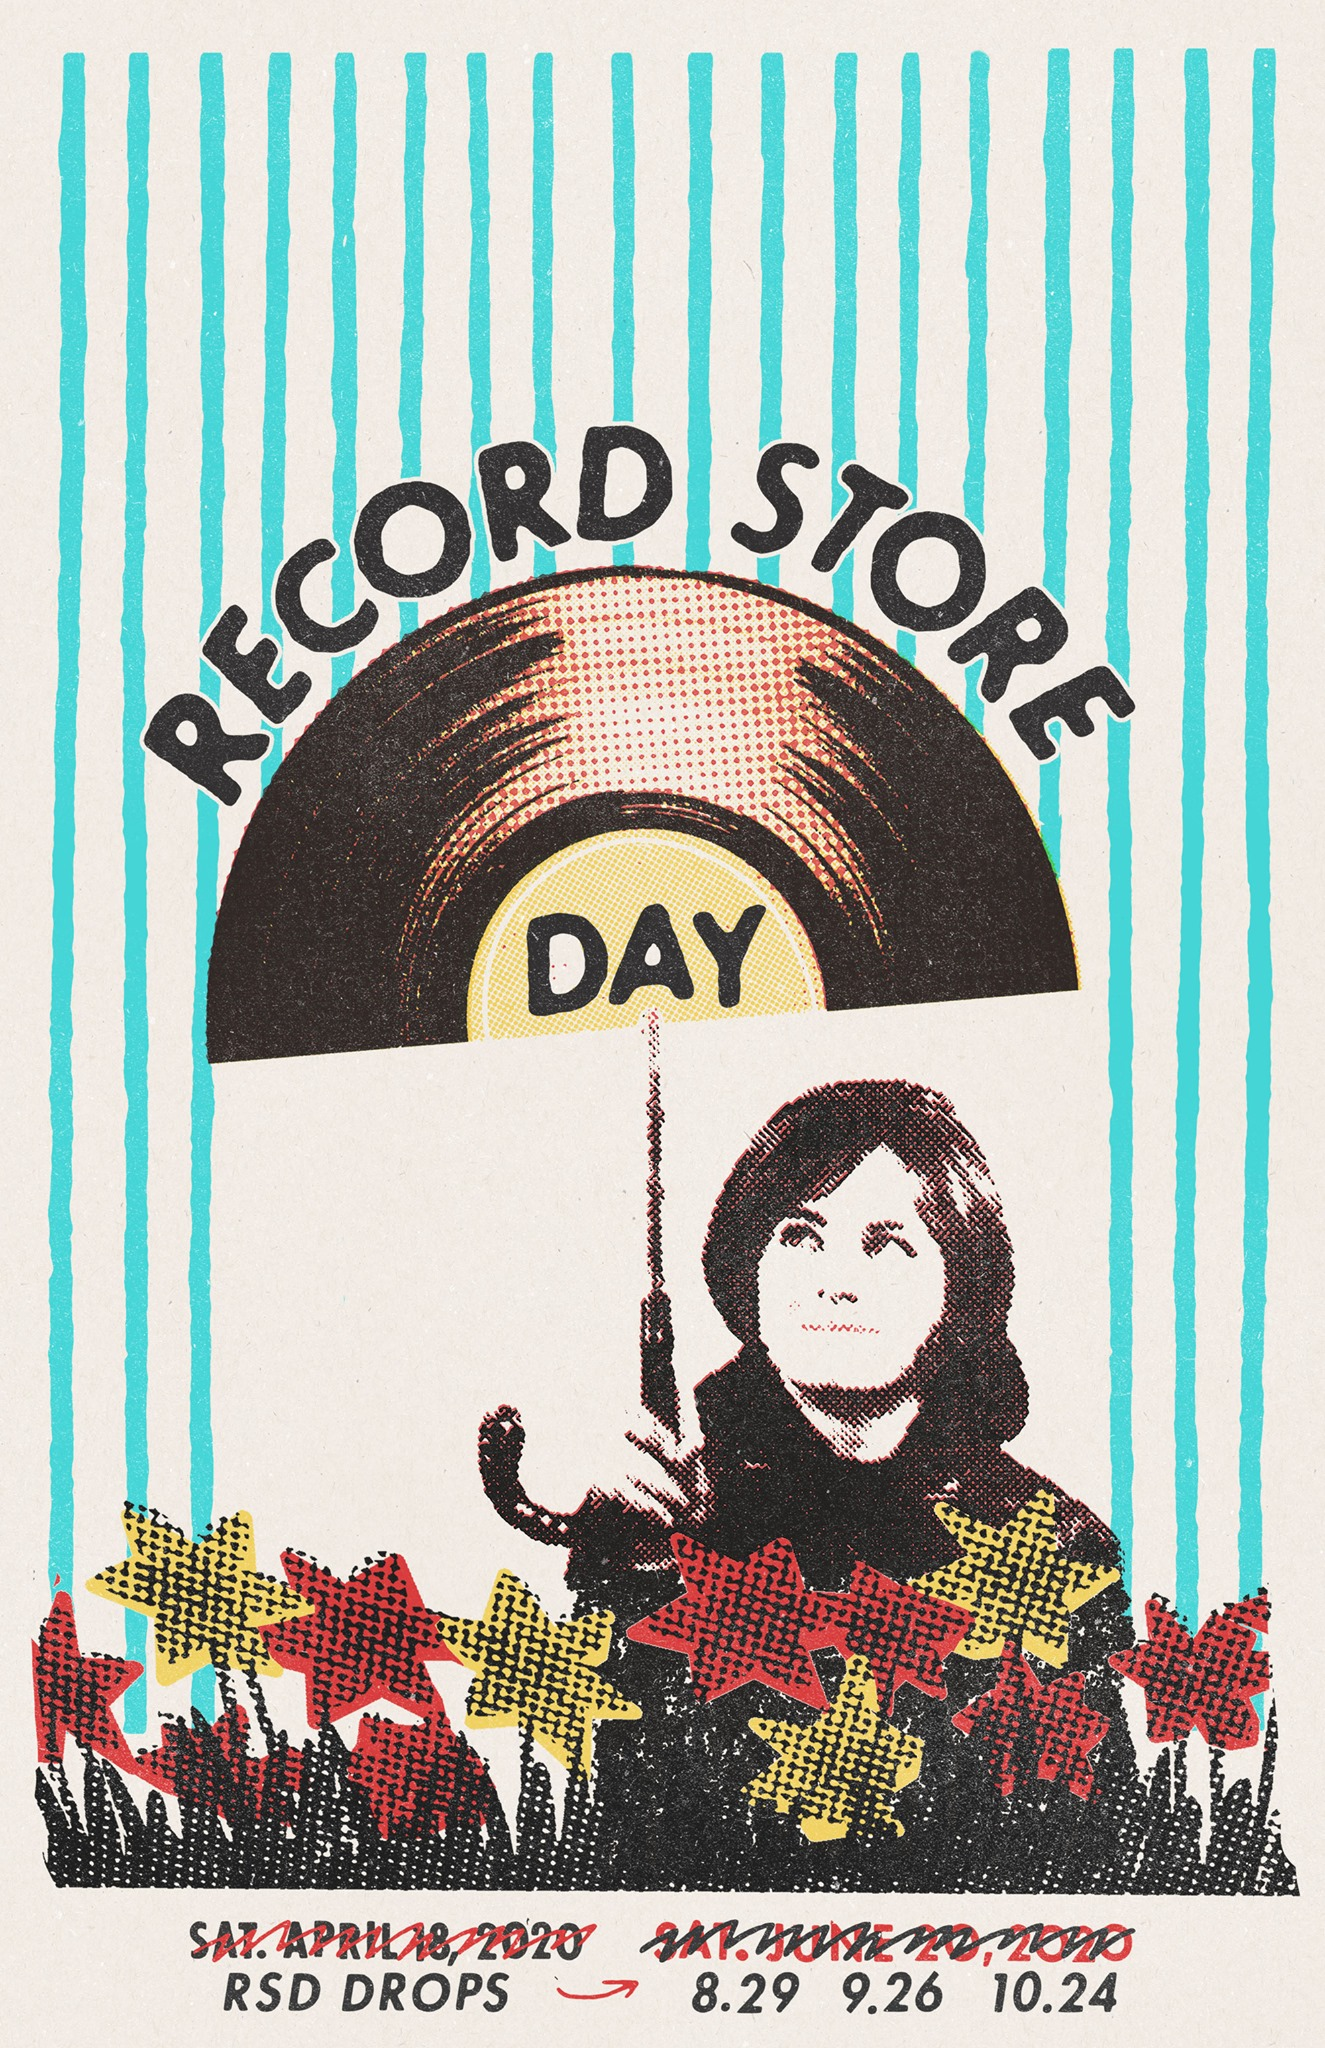 Record Store Day Puts August RSD Drops #1 In The Books As A Positive In A Very Strange Year